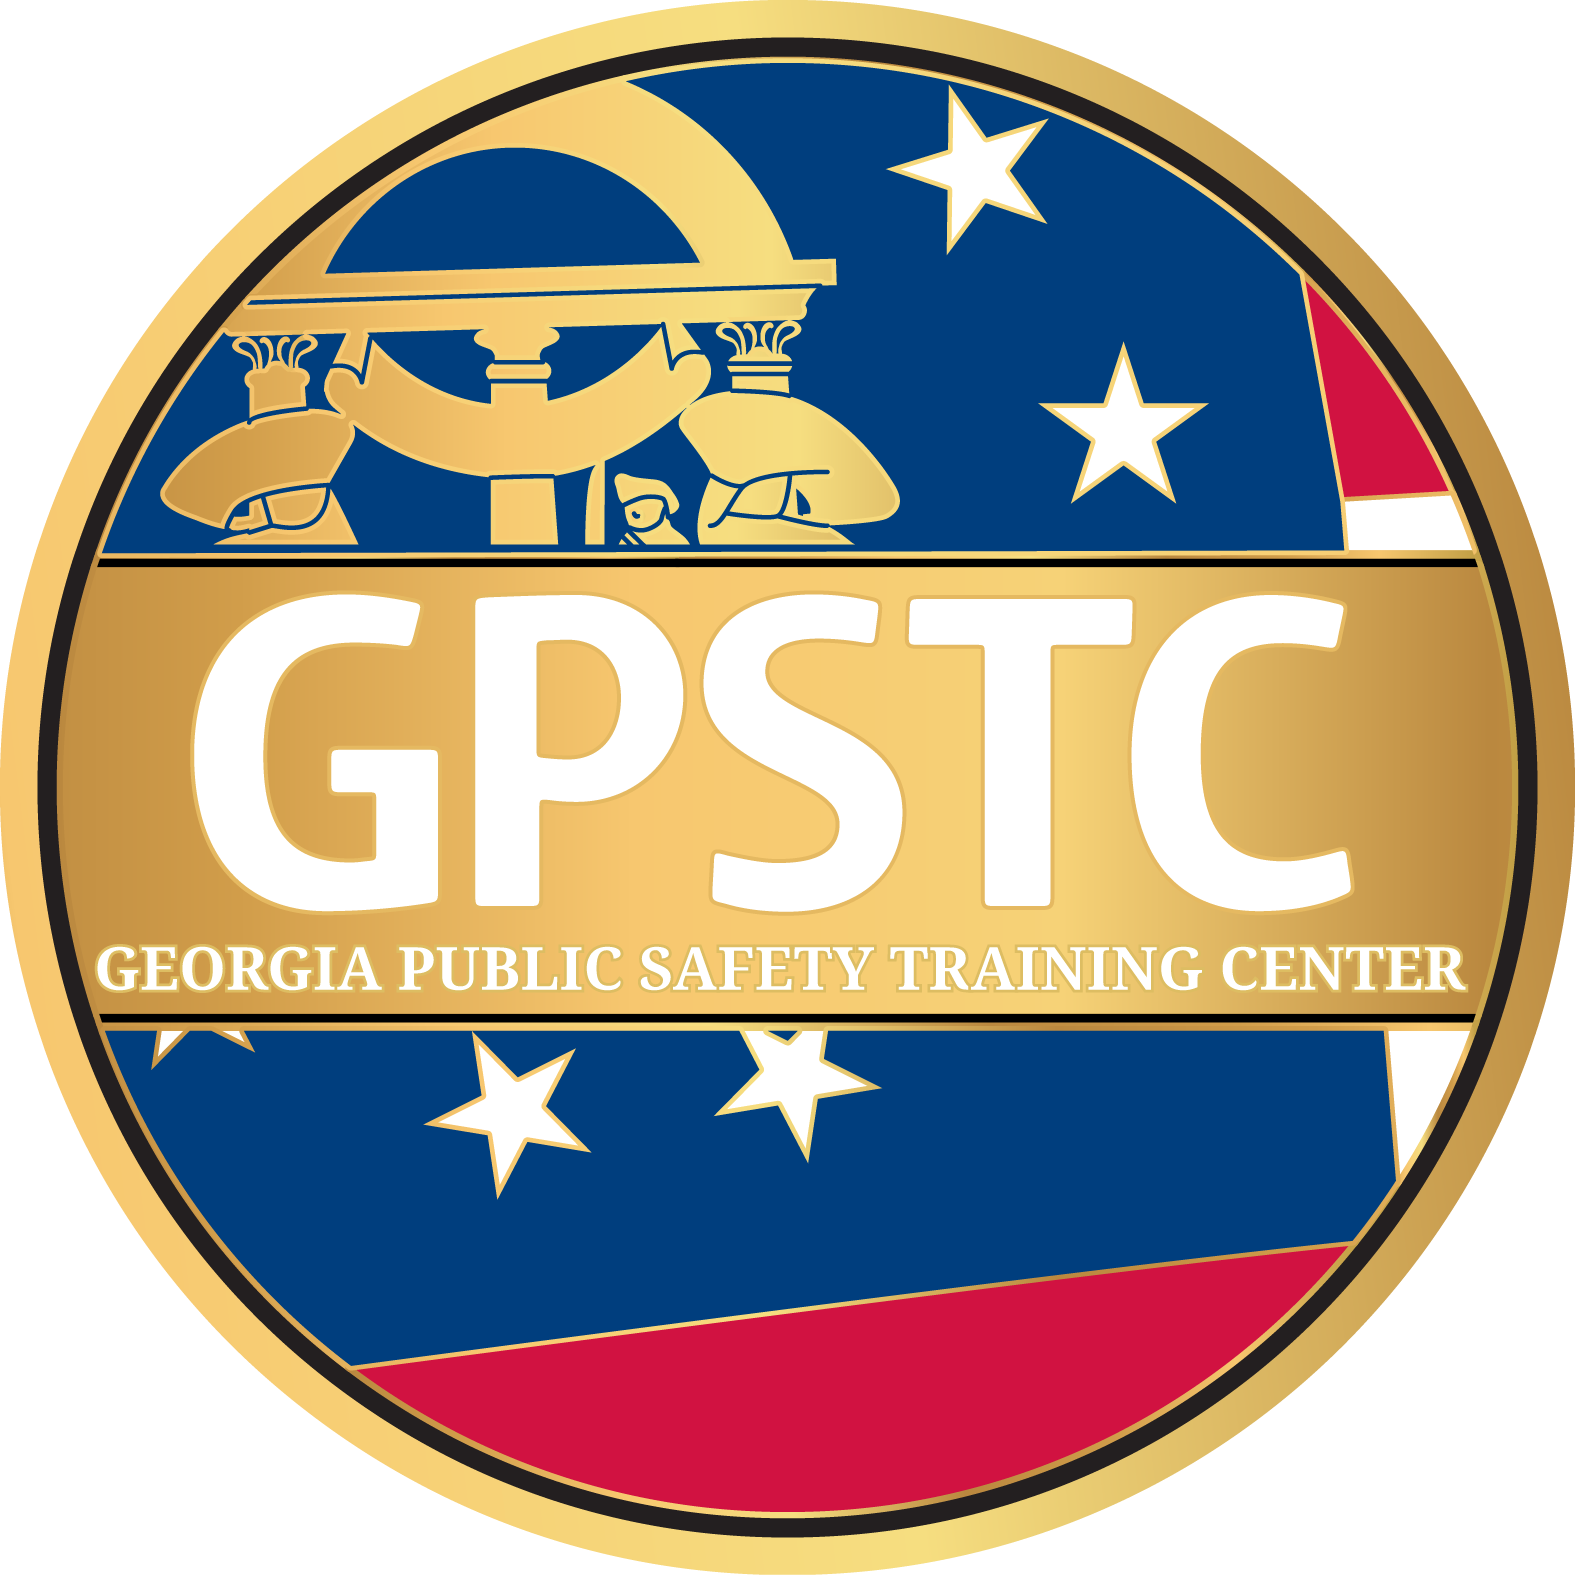 Georgia public safety training center gpstc xflitez Images